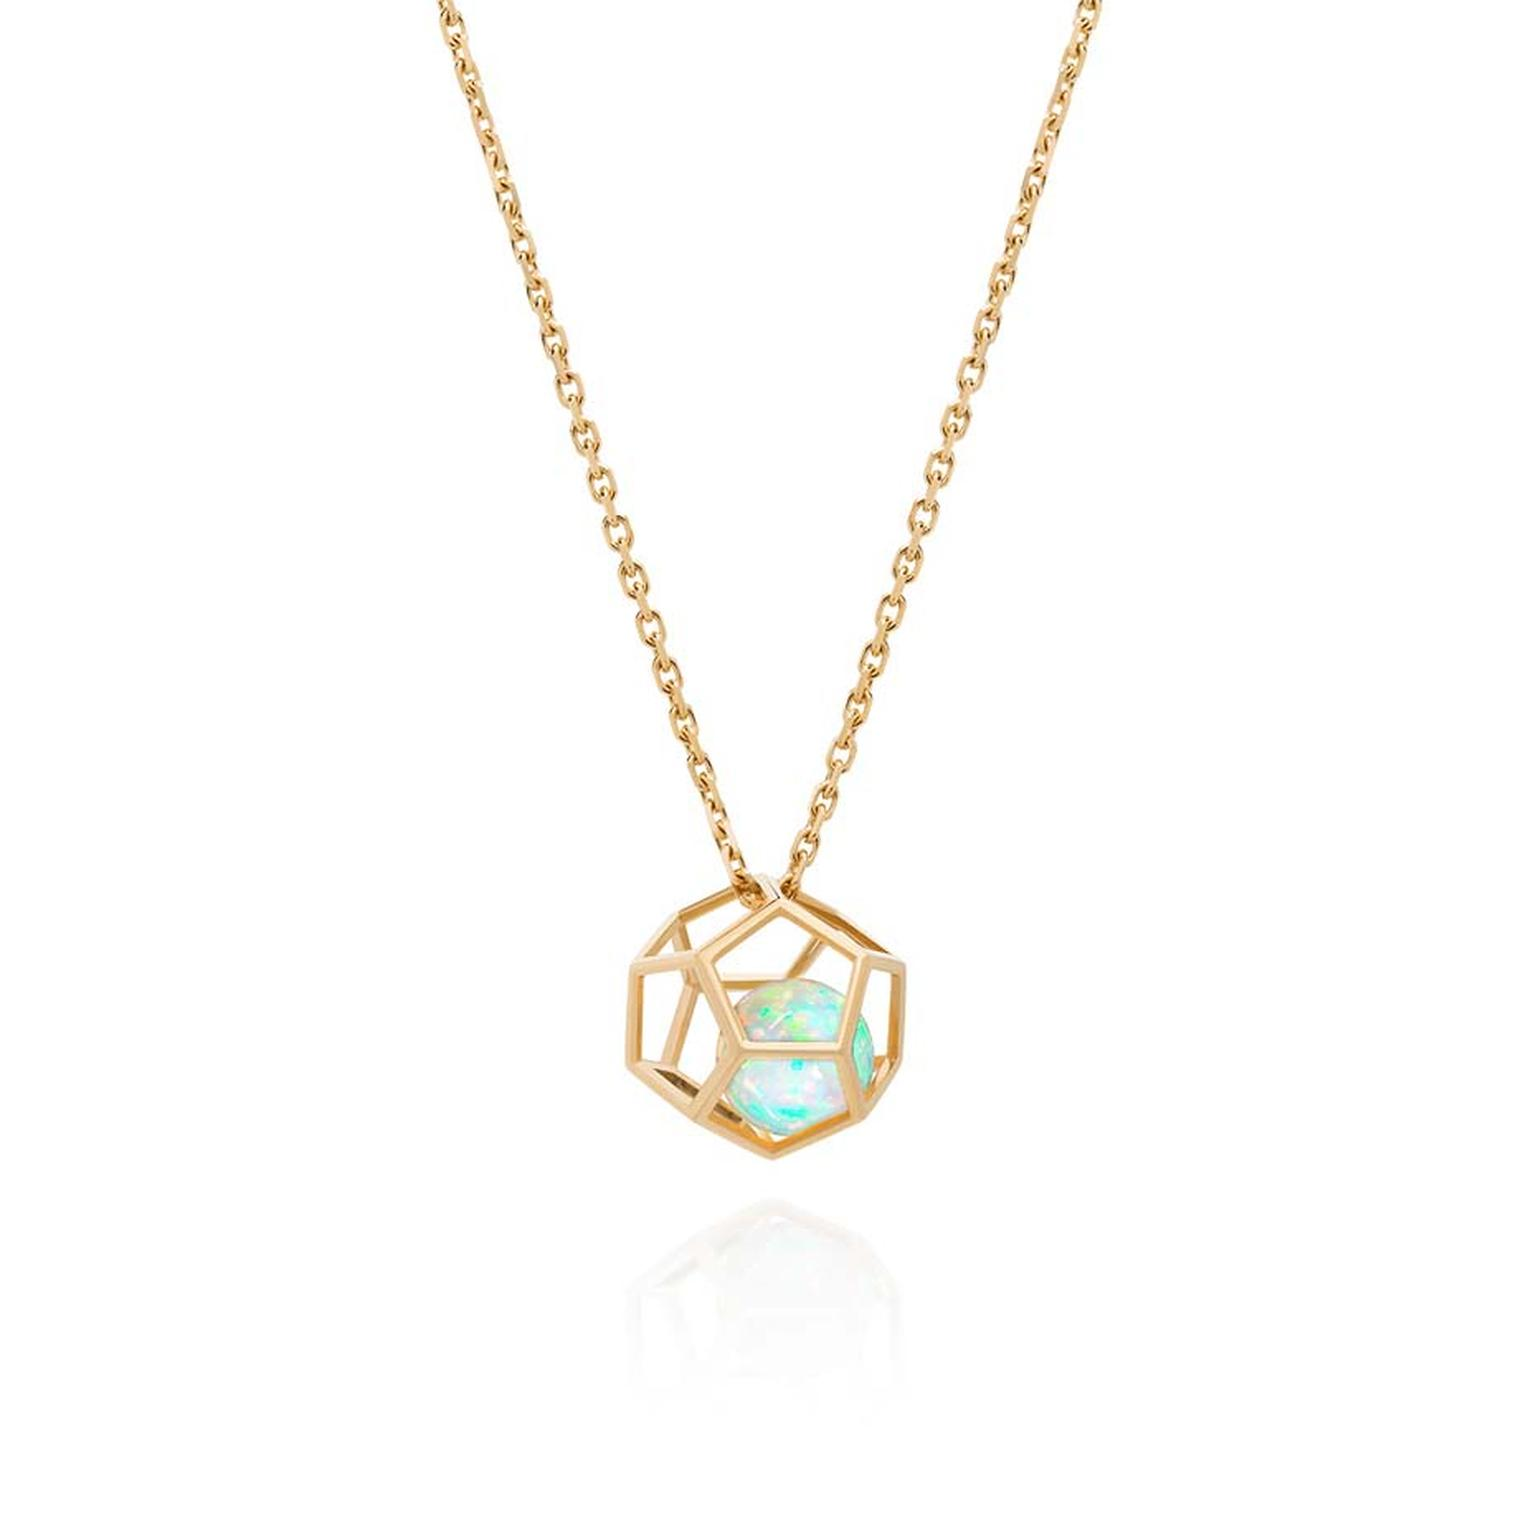 Ornella Iannuzi Rock It! necklace featuring an opal floating inside a gold dodecahedron cage.